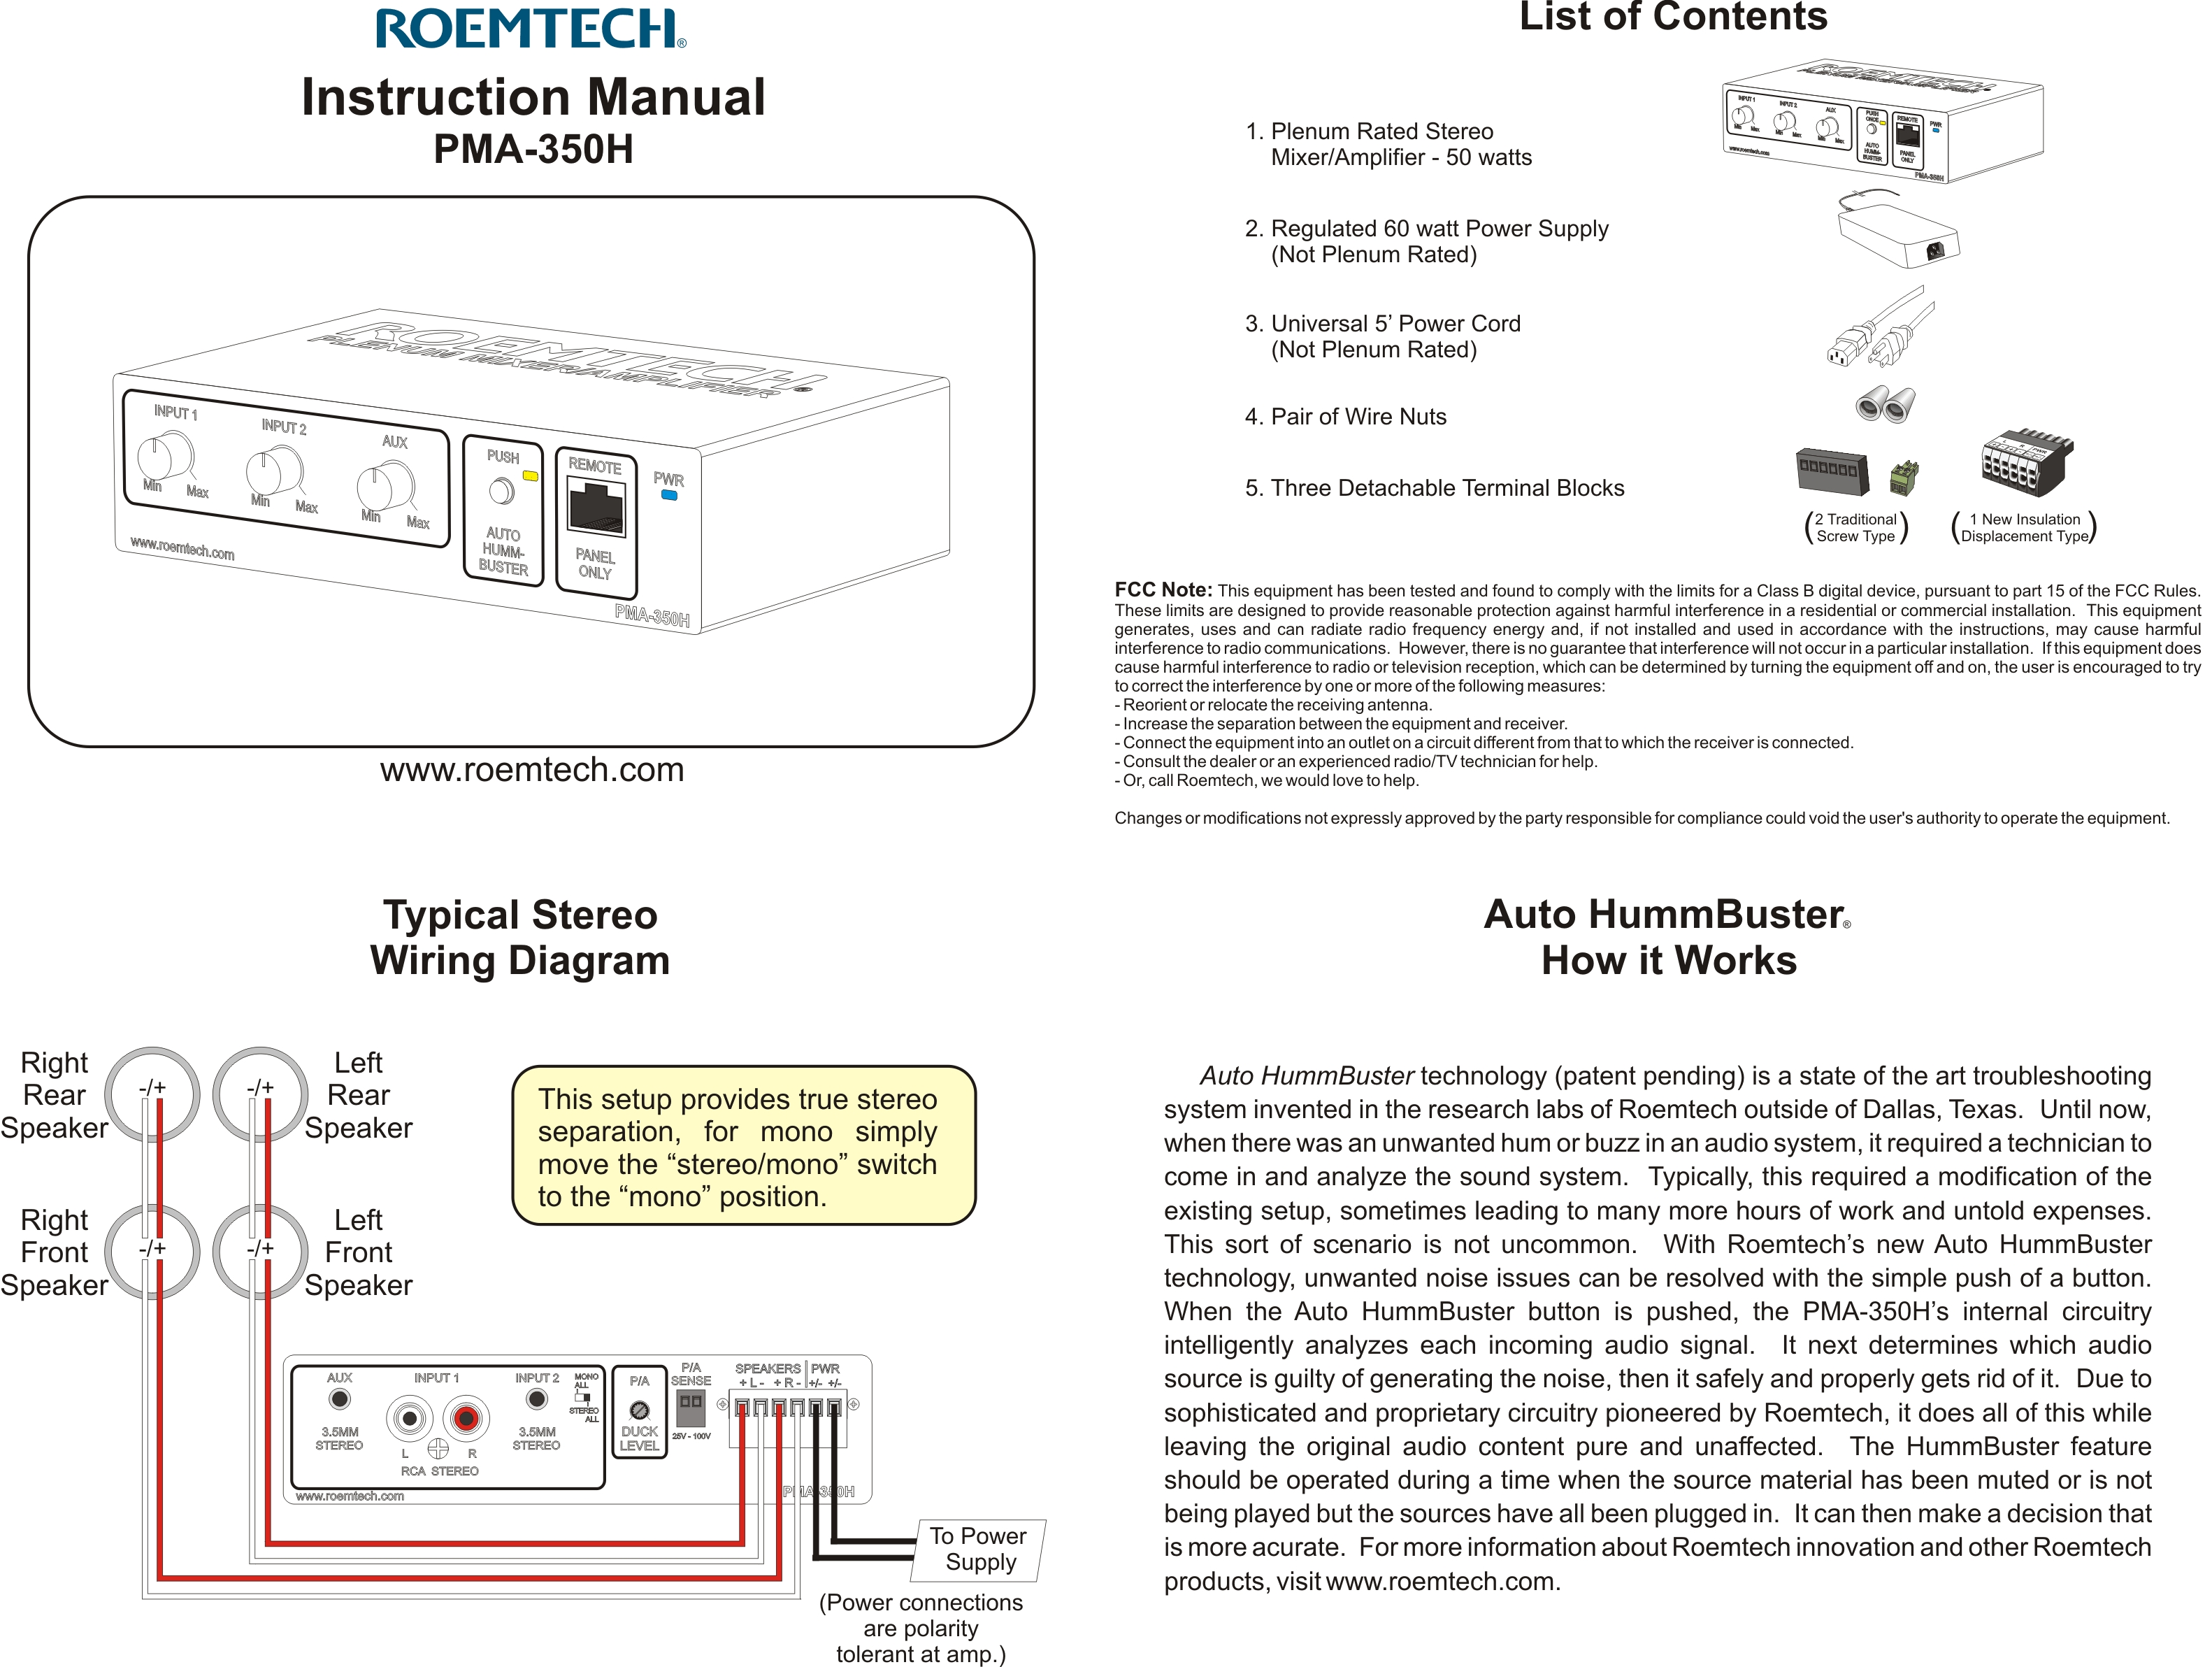 Classroom Audio Systems - PMA-350H Instruction Manual PDF